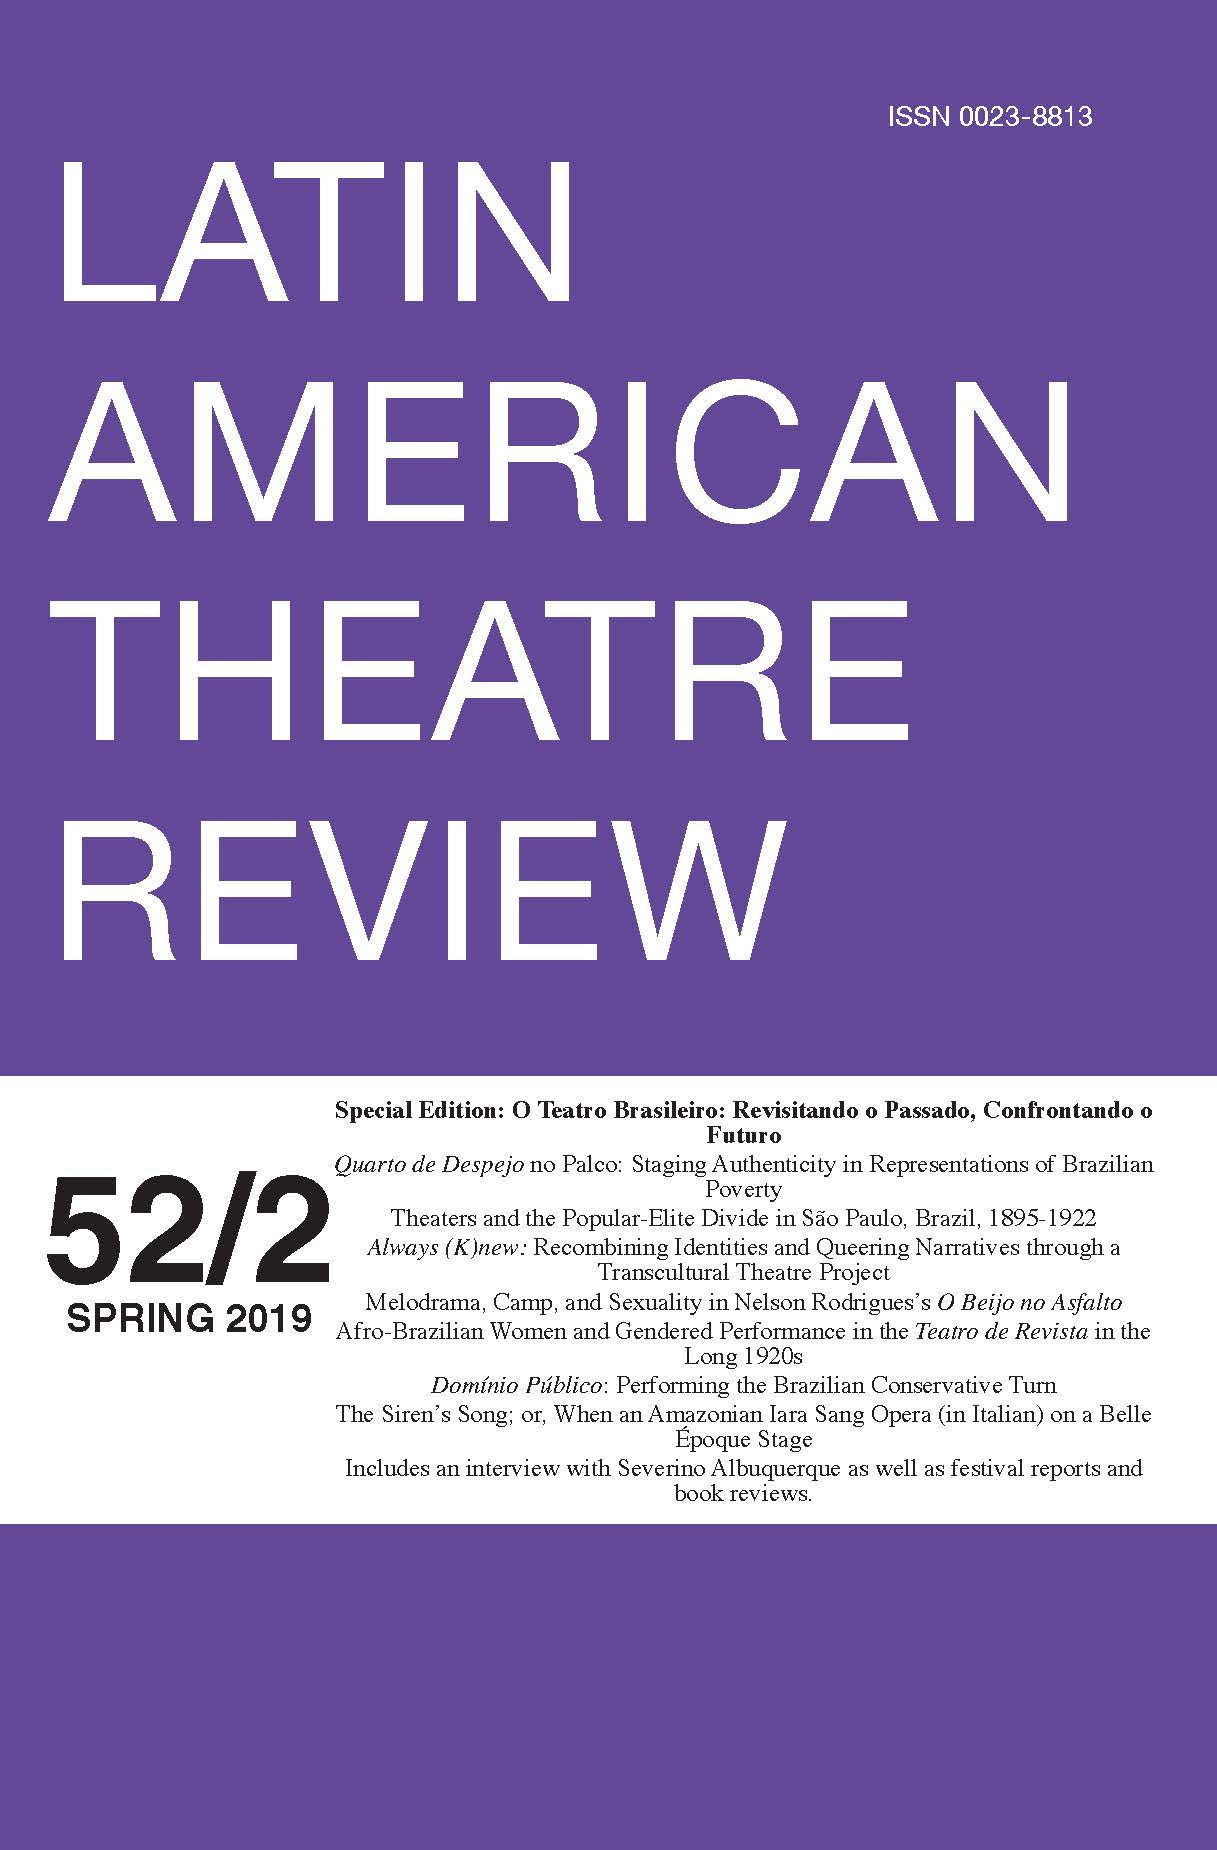 Latin American Theatre Review cover